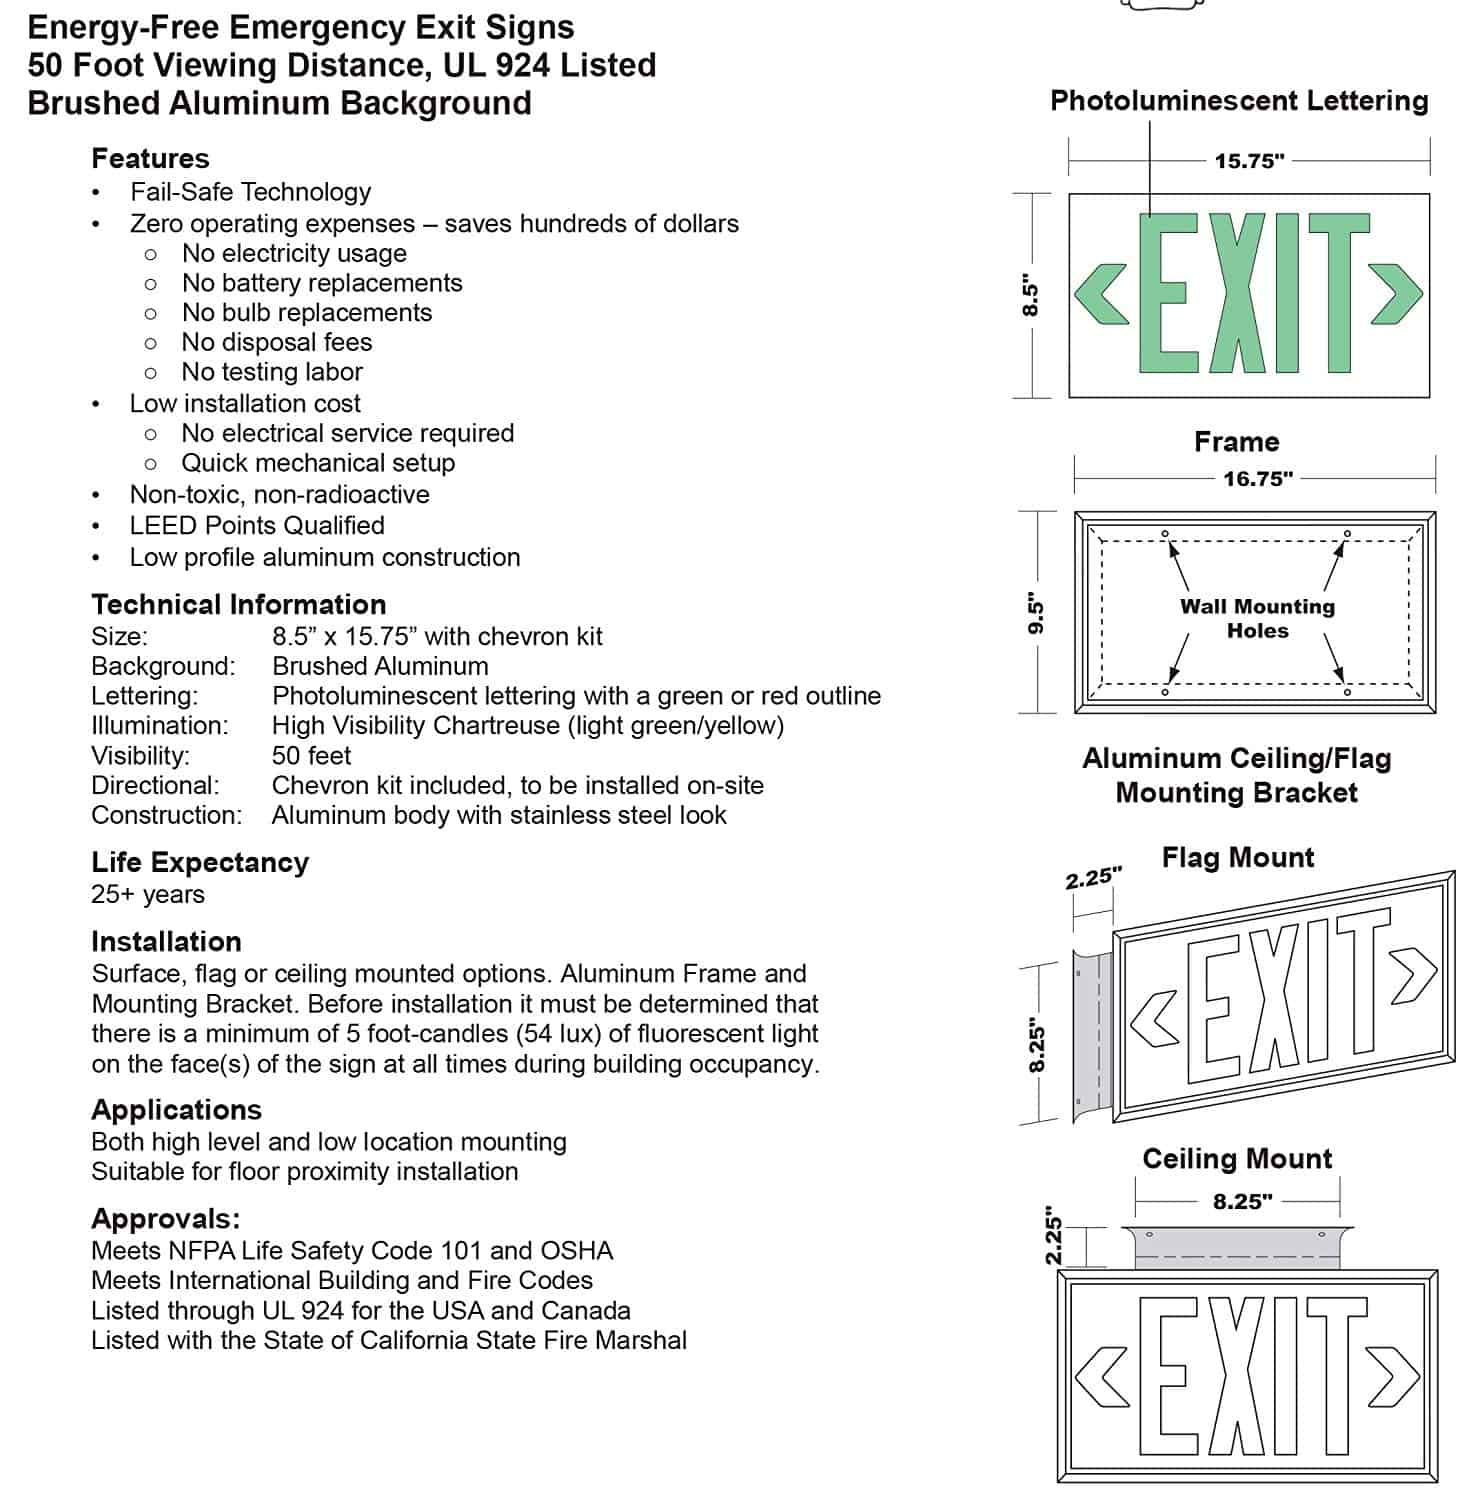 Glo UL 924 Listed Exit Sign 75 Viewing Distance Double Sided with Bracket